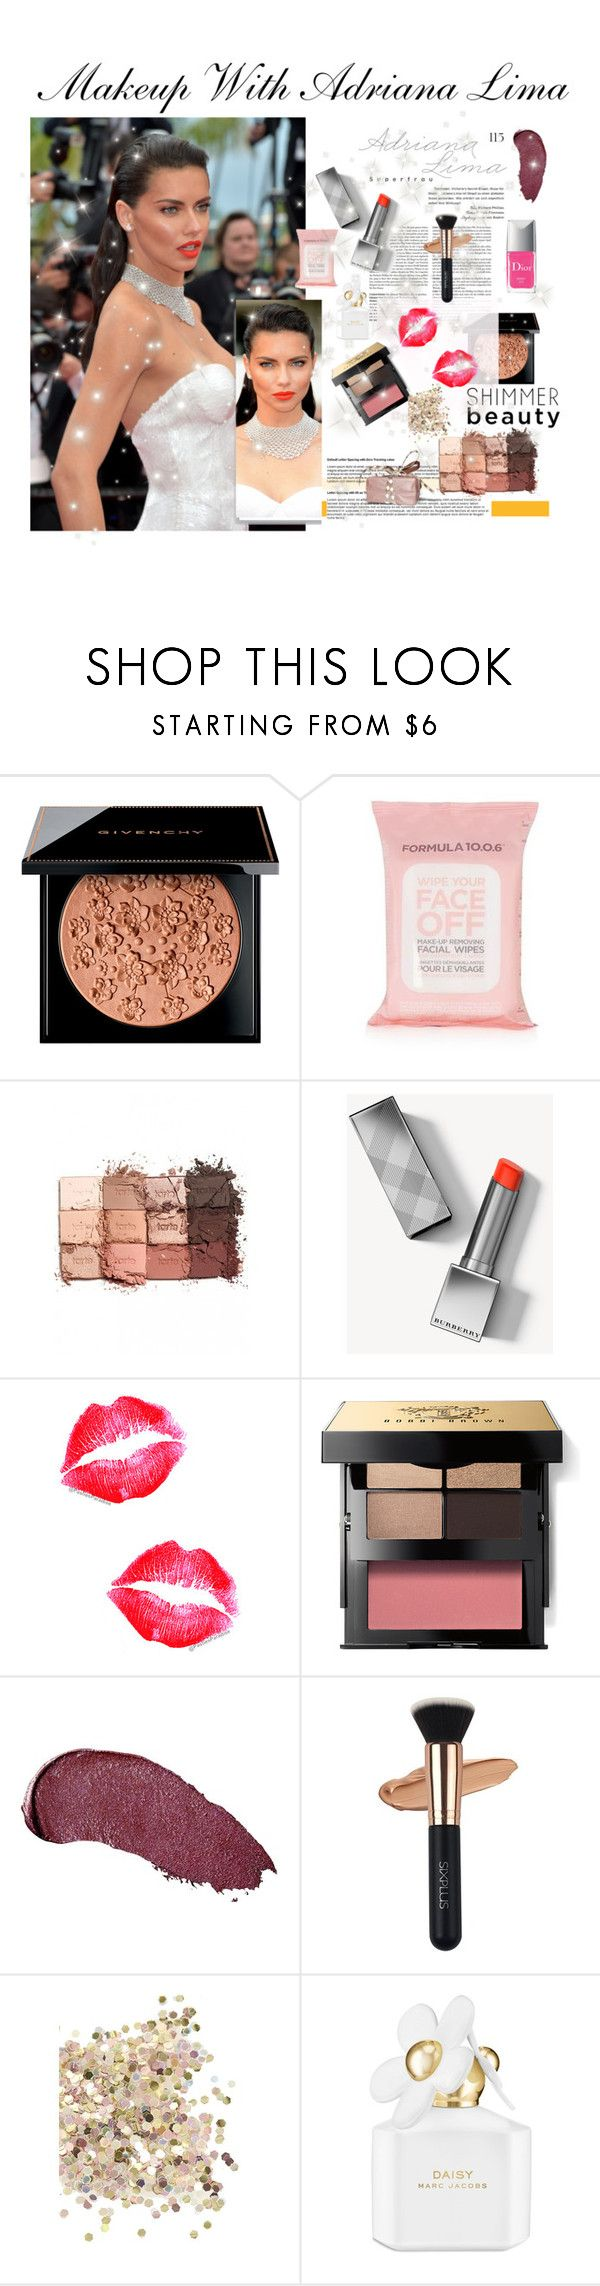 """""""Make up WIth Adriana Lima"""" by faanciella ❤ liked on Polyvore featuring Givenchy, Topshop, tarte, Burberry, Bobbi Brown Cosmetics, Kat Von D, Marc Jacobs, Christian Dior, ArianaGrande and cannes"""